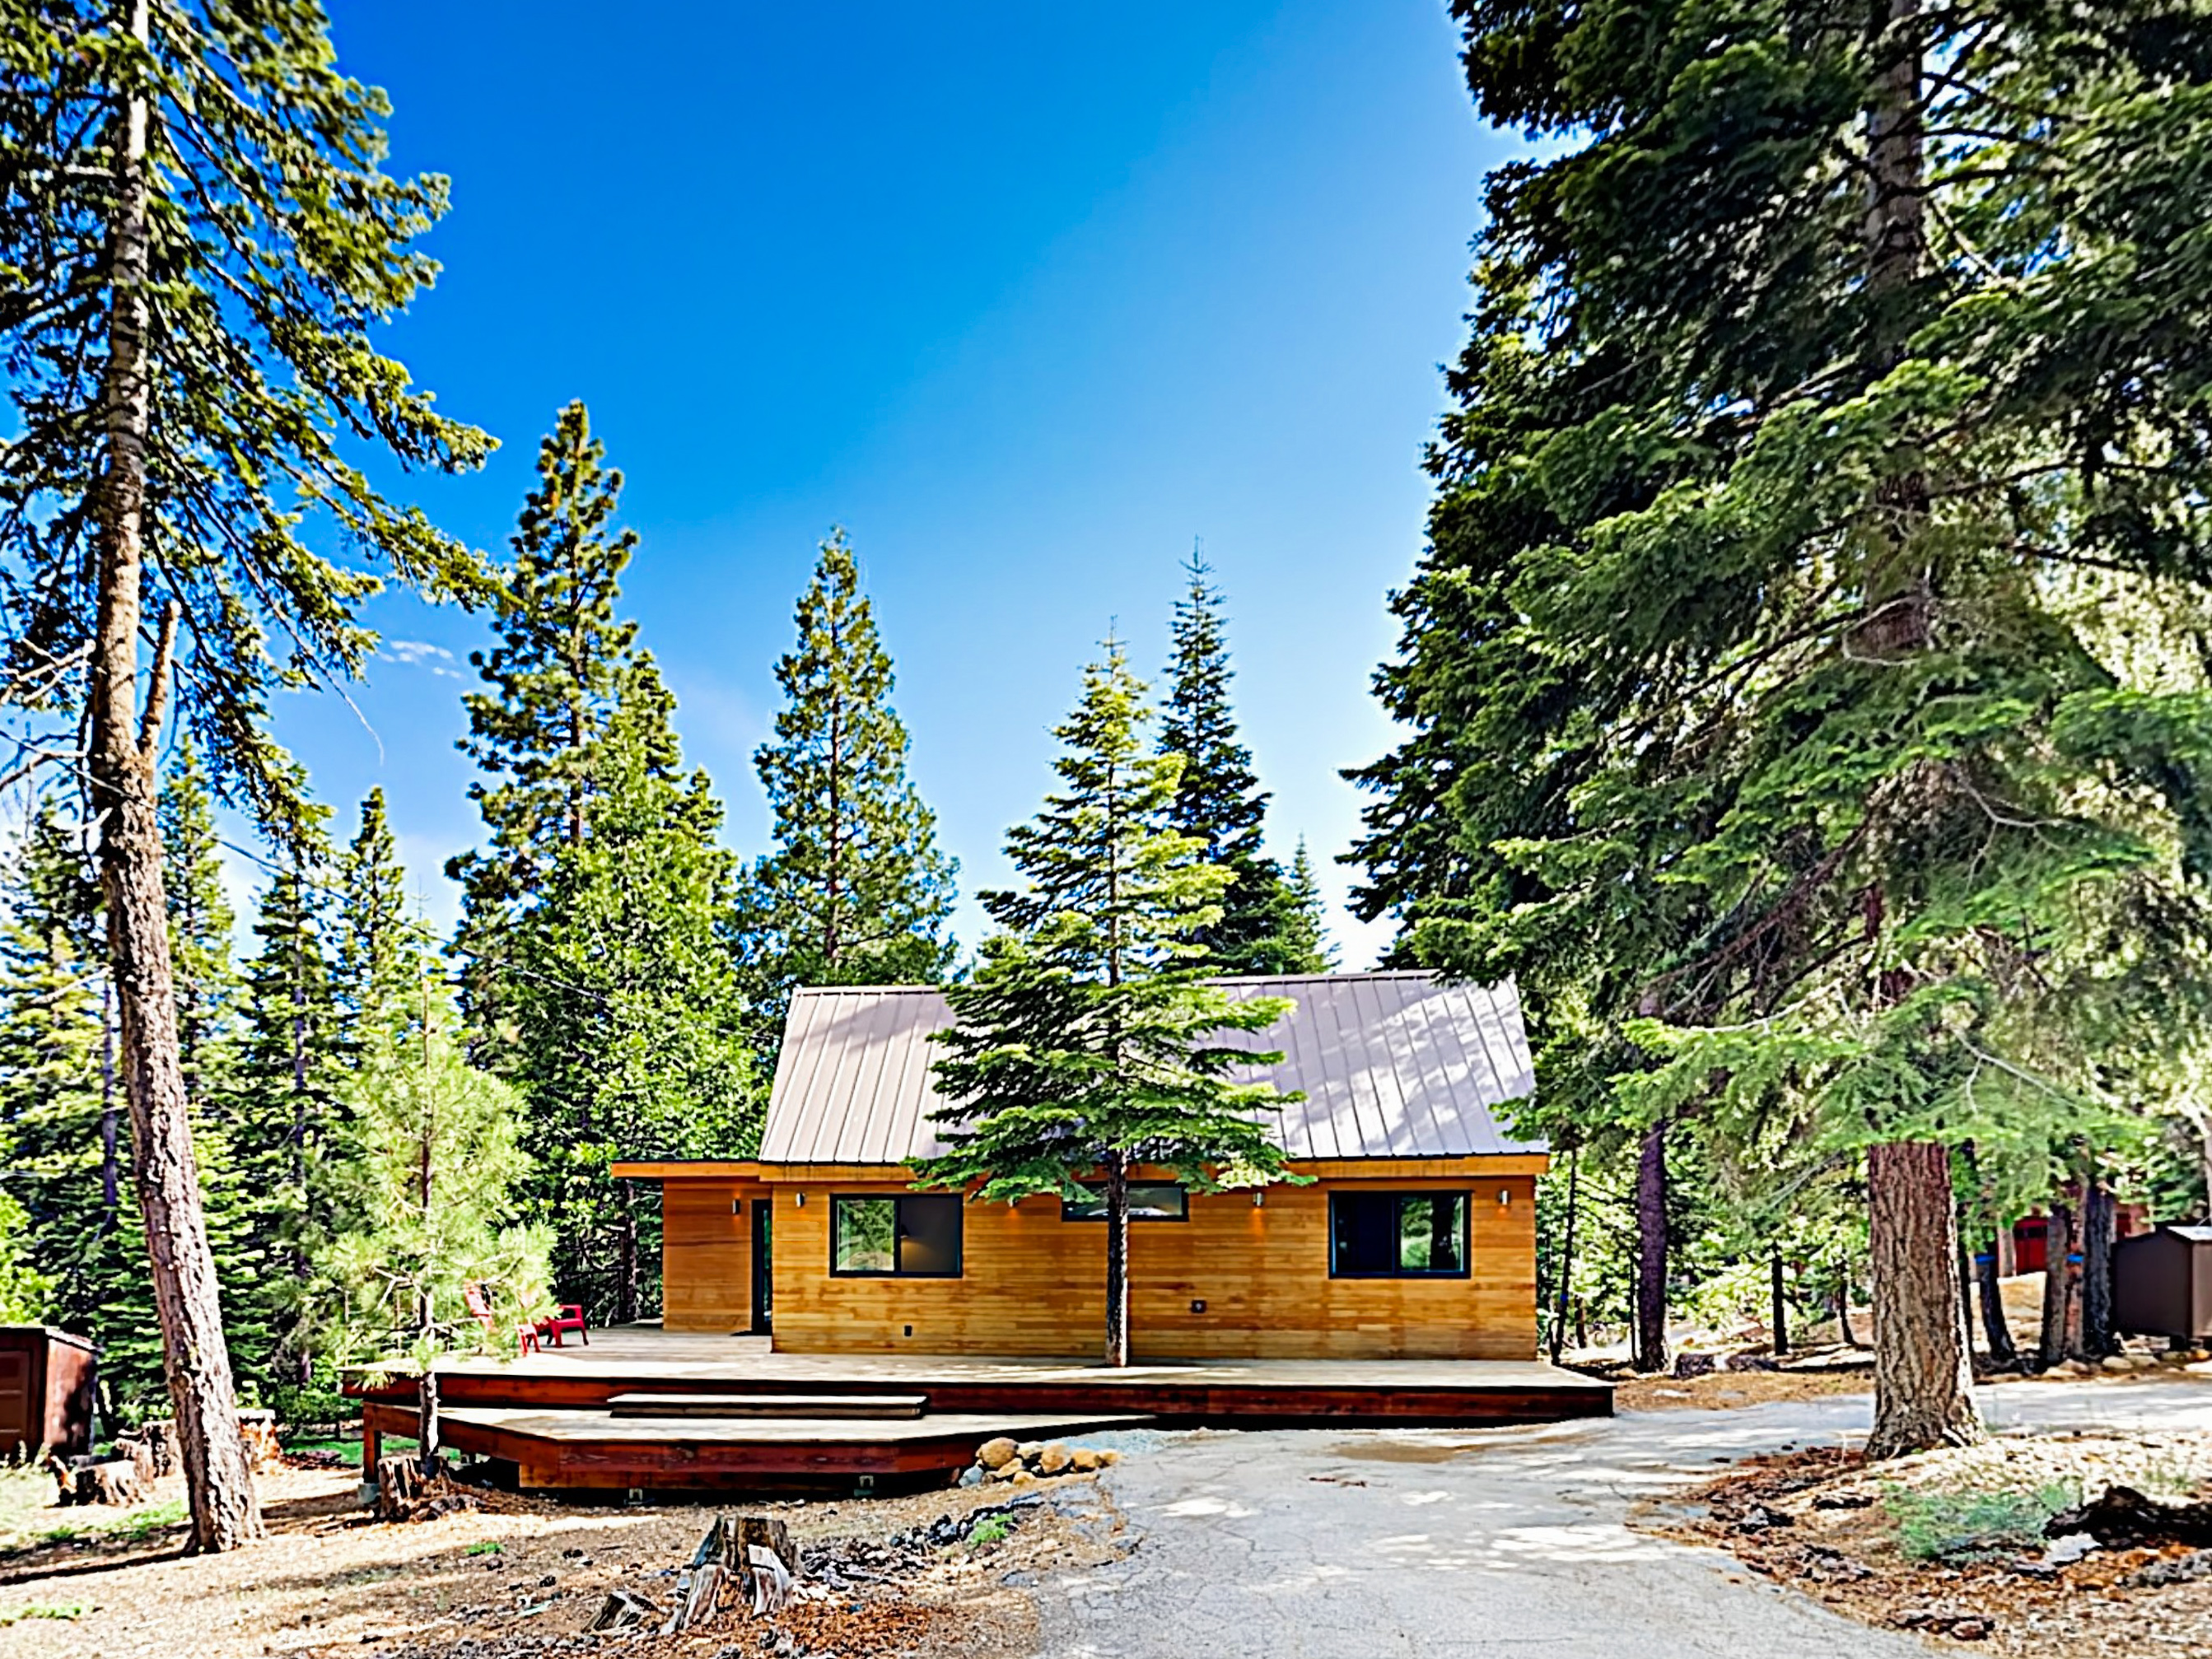 Tahoe Vista CA Vacation Rental Welcome to North